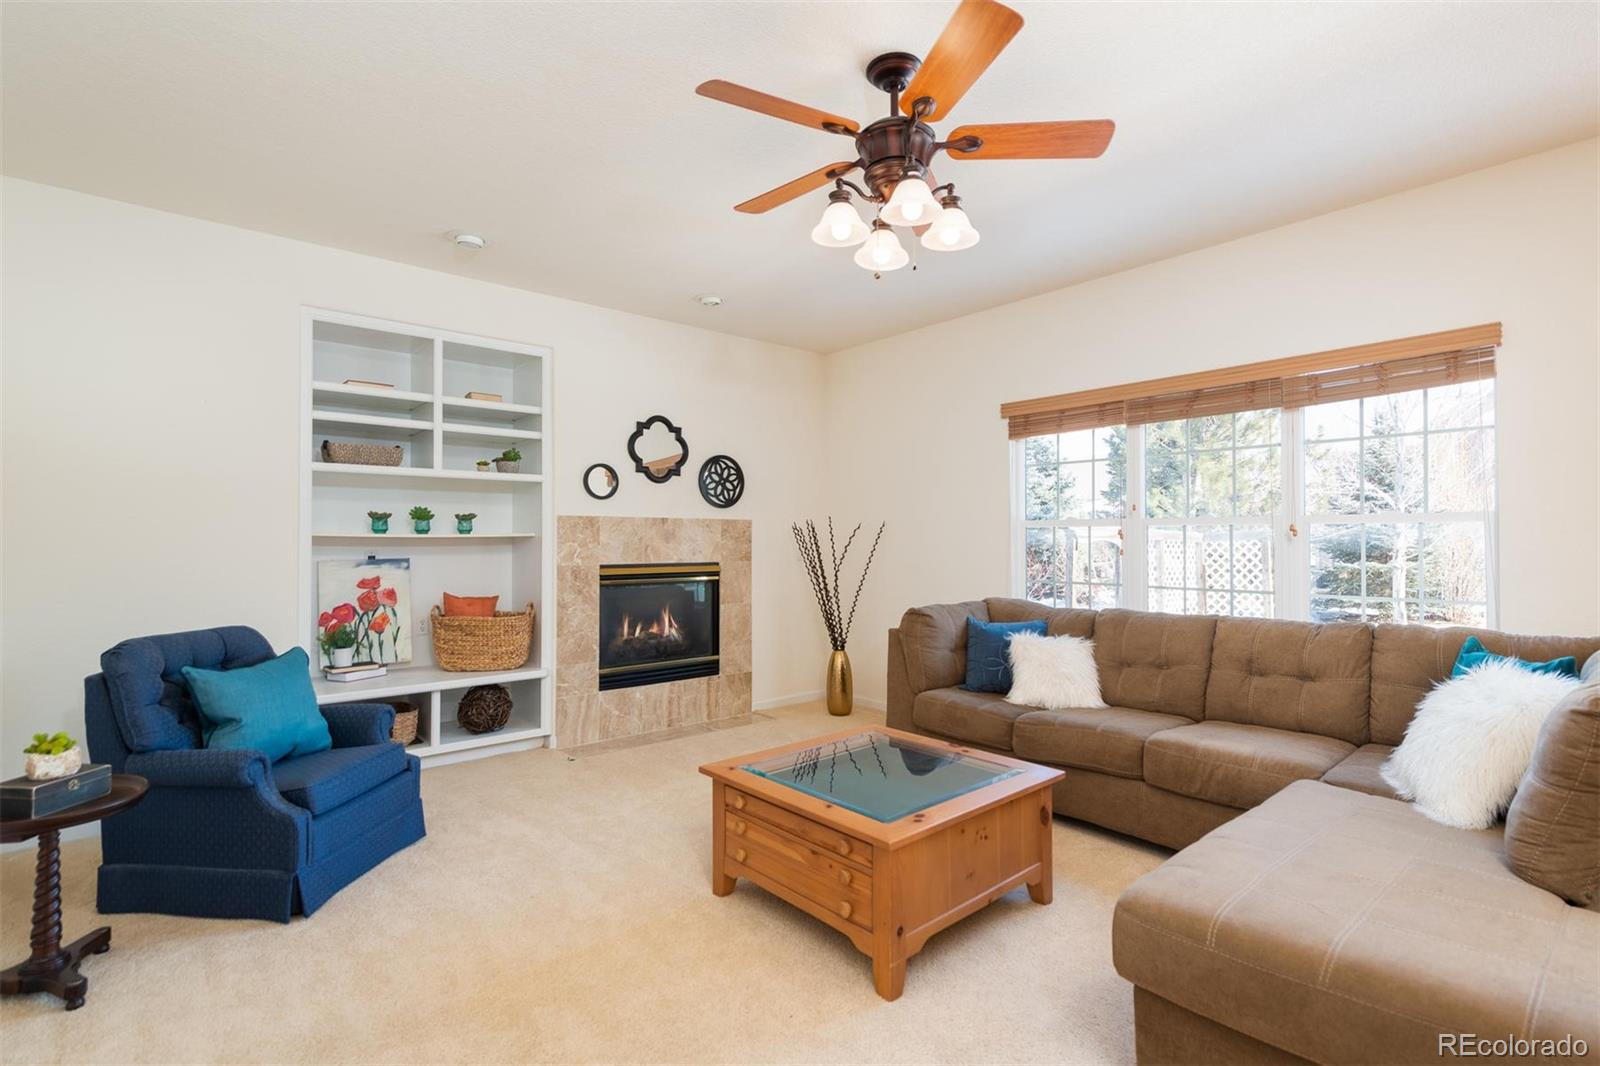 MLS# 3442851 - 2 - 6552 S Ouray Way, Aurora, CO 80016